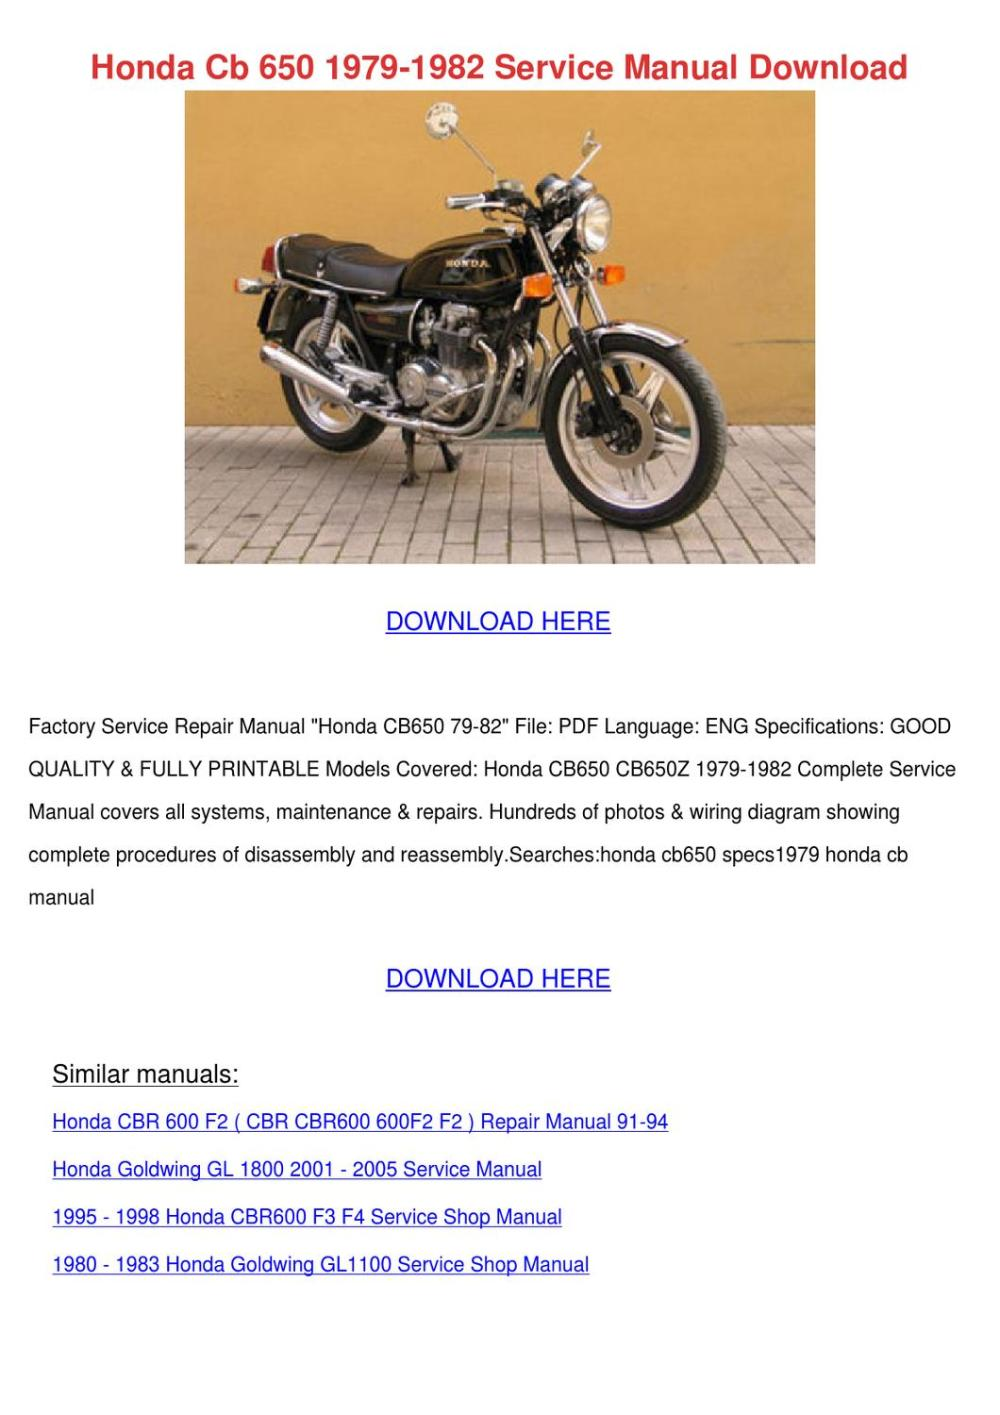 medium resolution of each them format cyclepedia 1983 cb650sc nighthawk printed features detailed black white photographs wiring diagrams introduction chapter engine